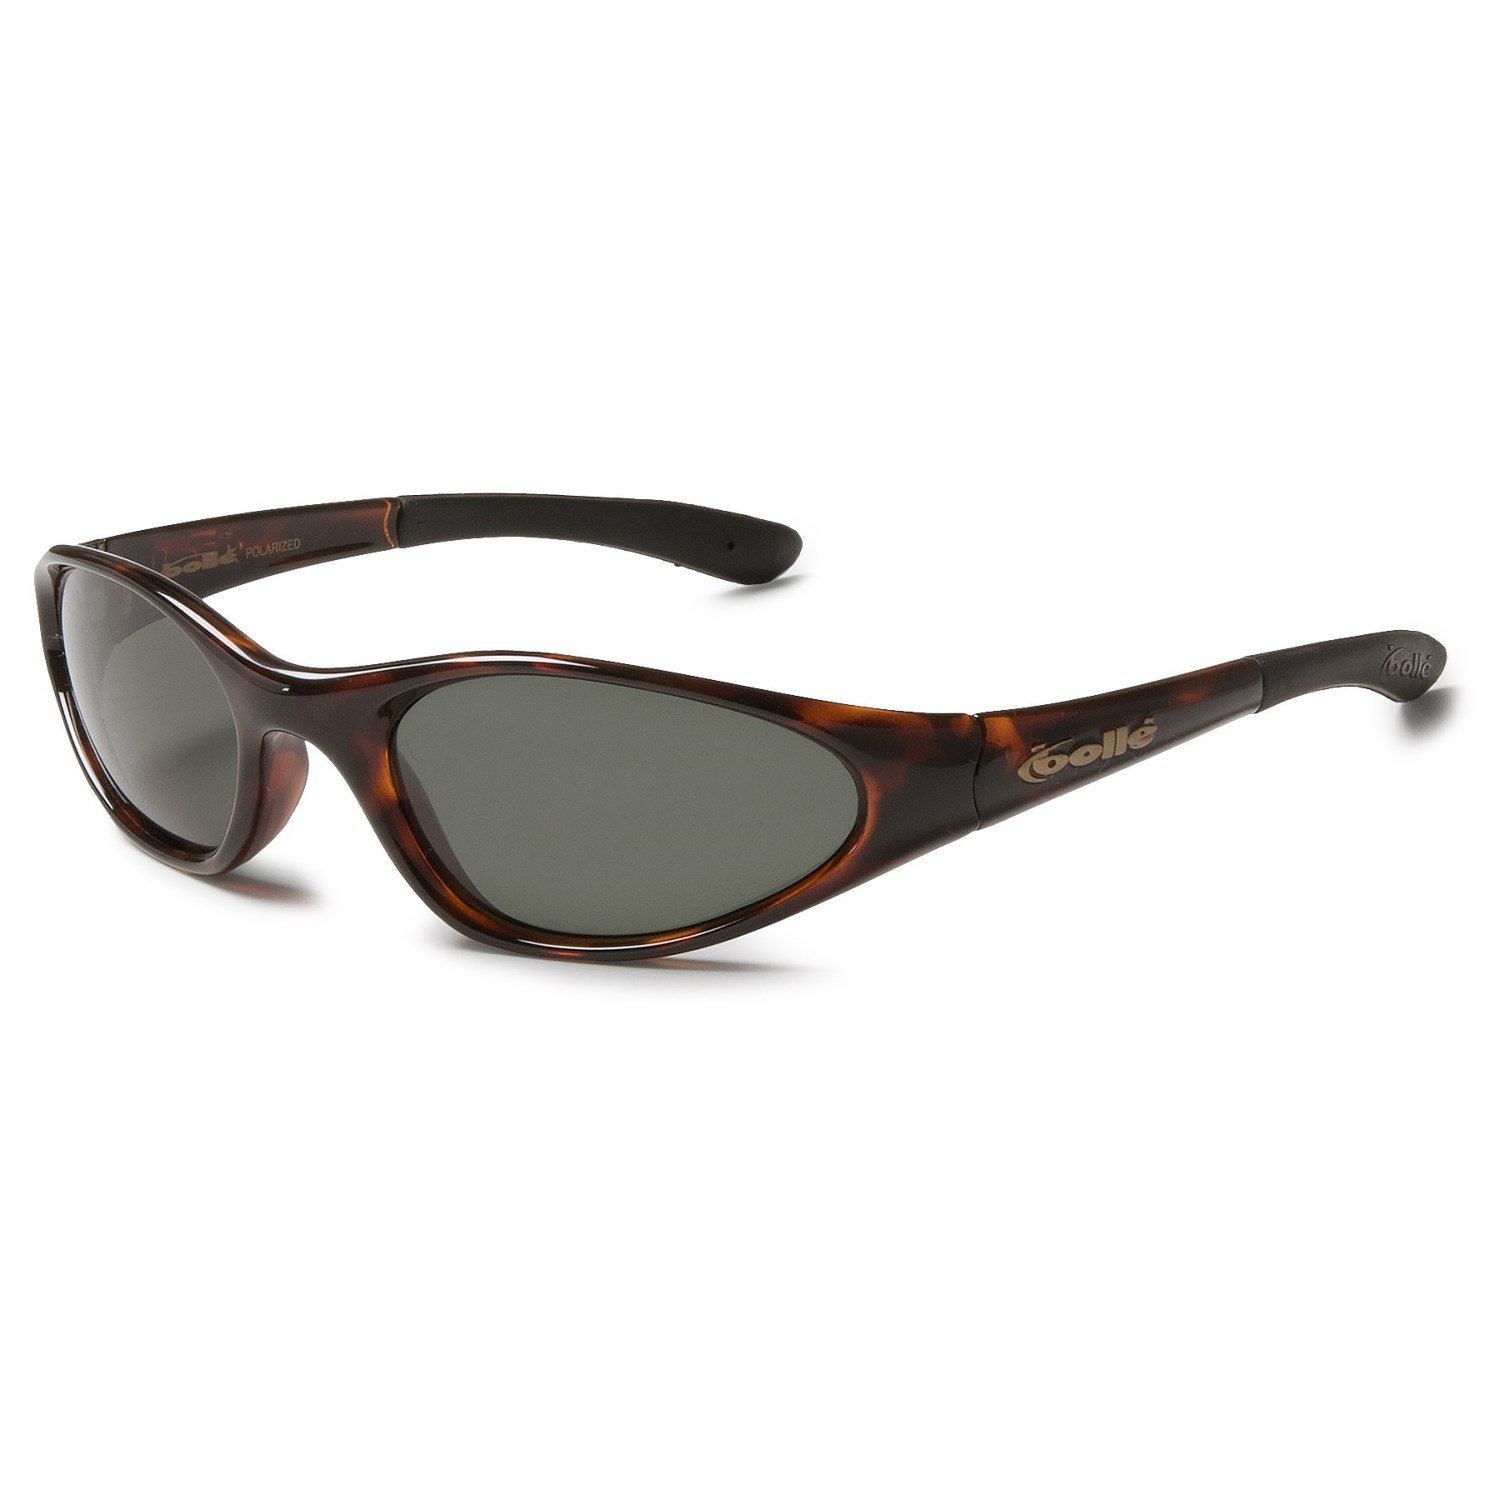 293a81c7159 Ray Ban Rb3025 87506 Weather « Heritage Malta